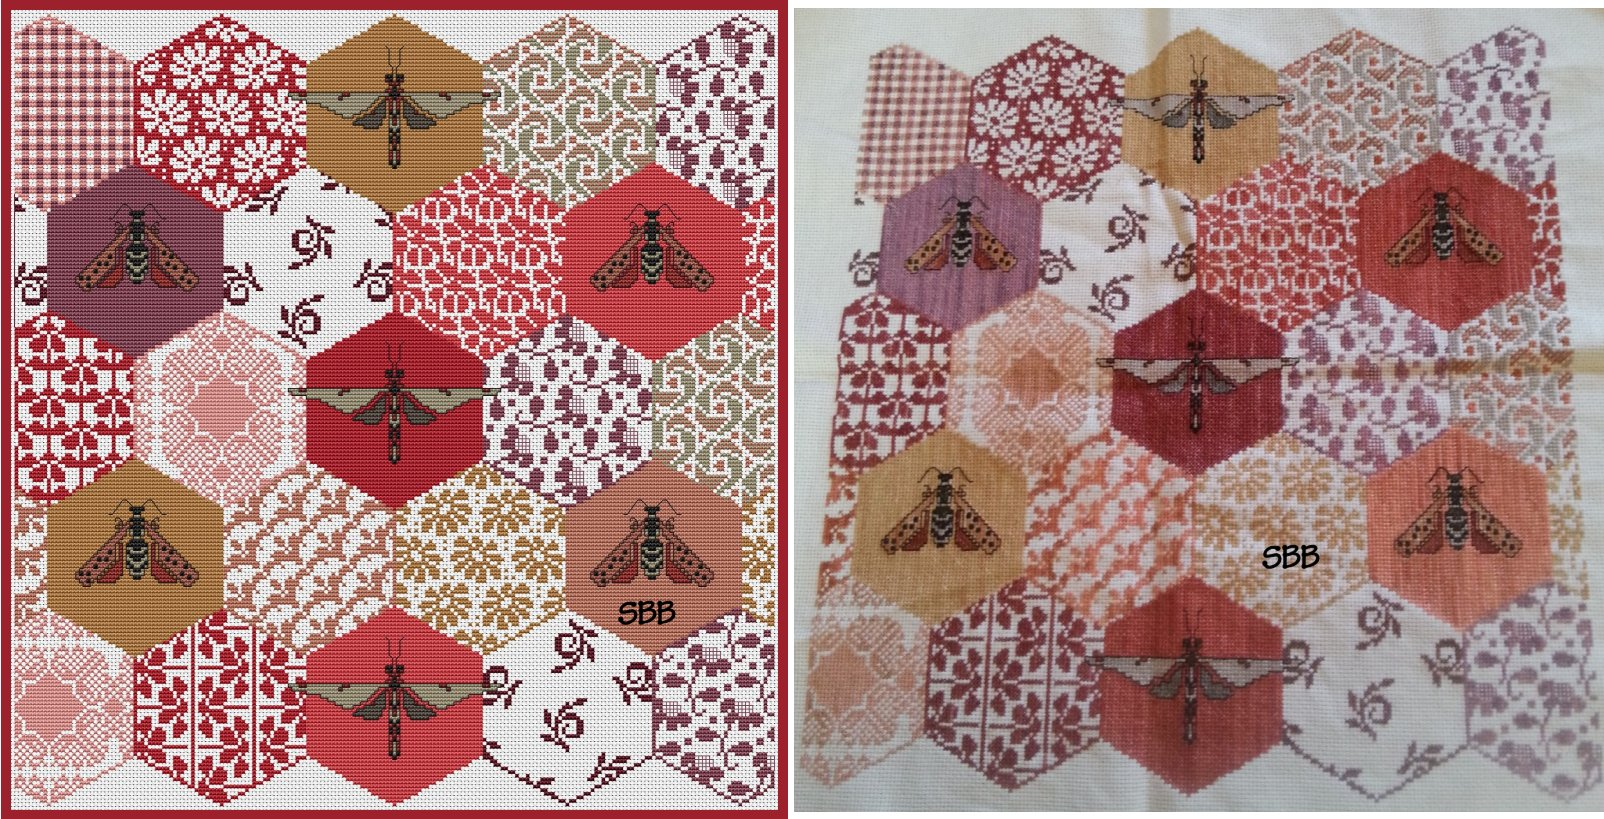 Long Dog Samplers The Quilted Bees